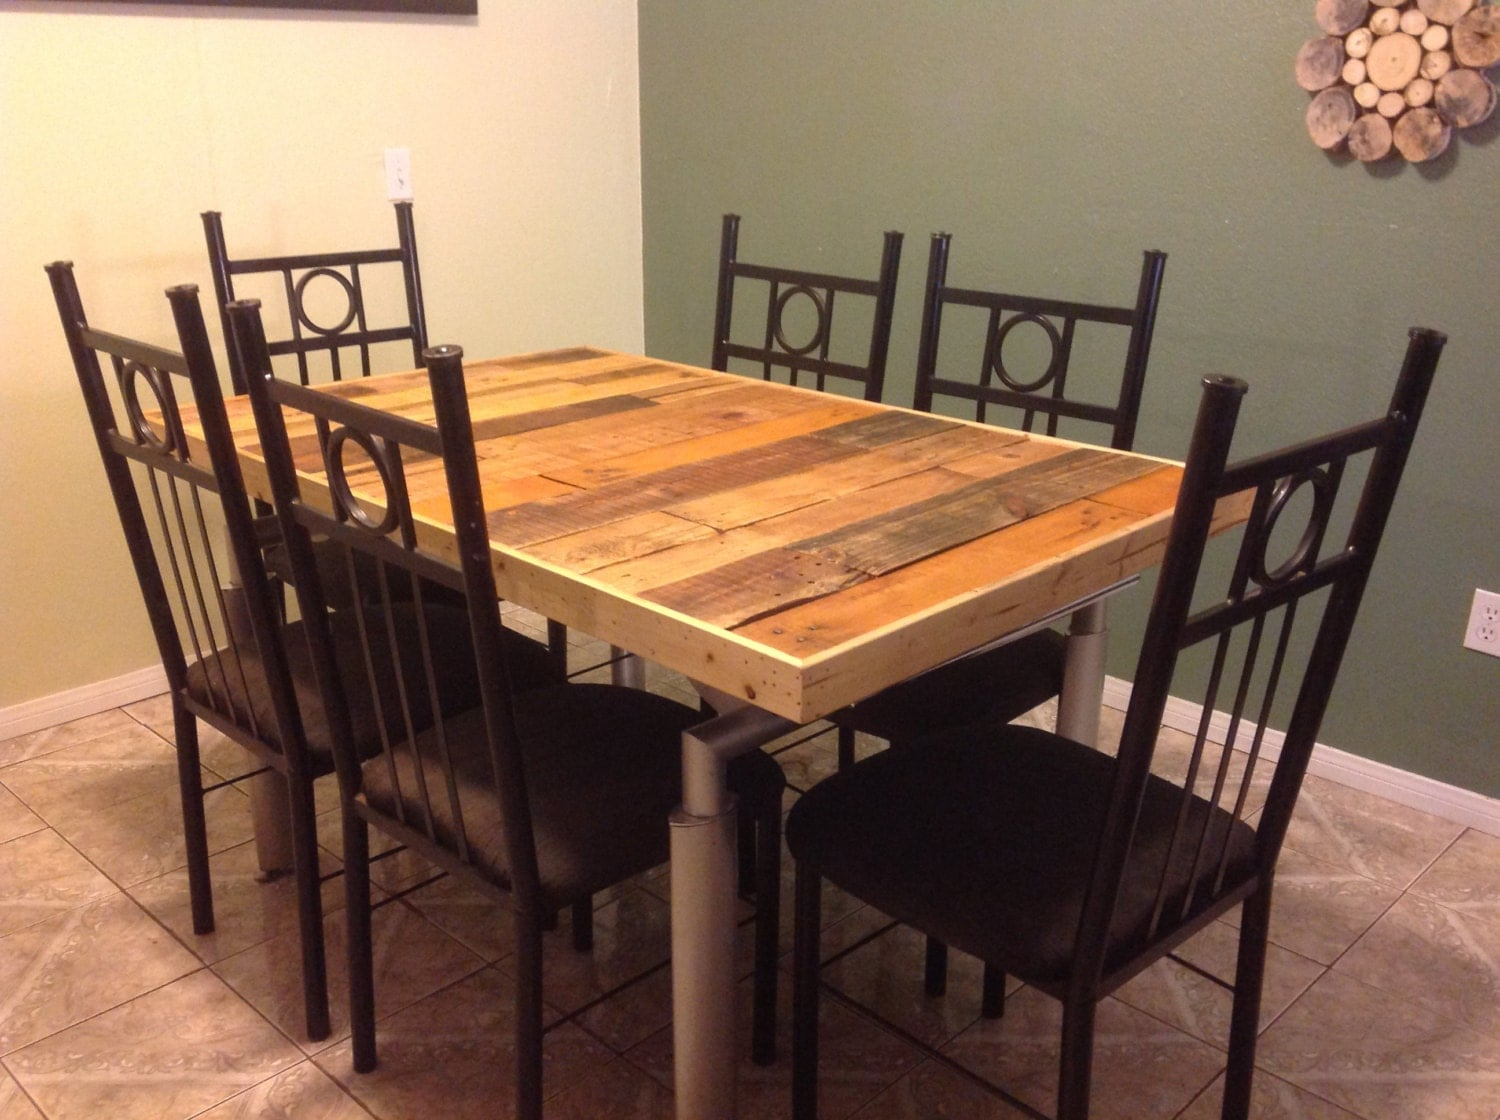 gorgeous rustic farm table kitchen dining pallet reclaimed. Black Bedroom Furniture Sets. Home Design Ideas